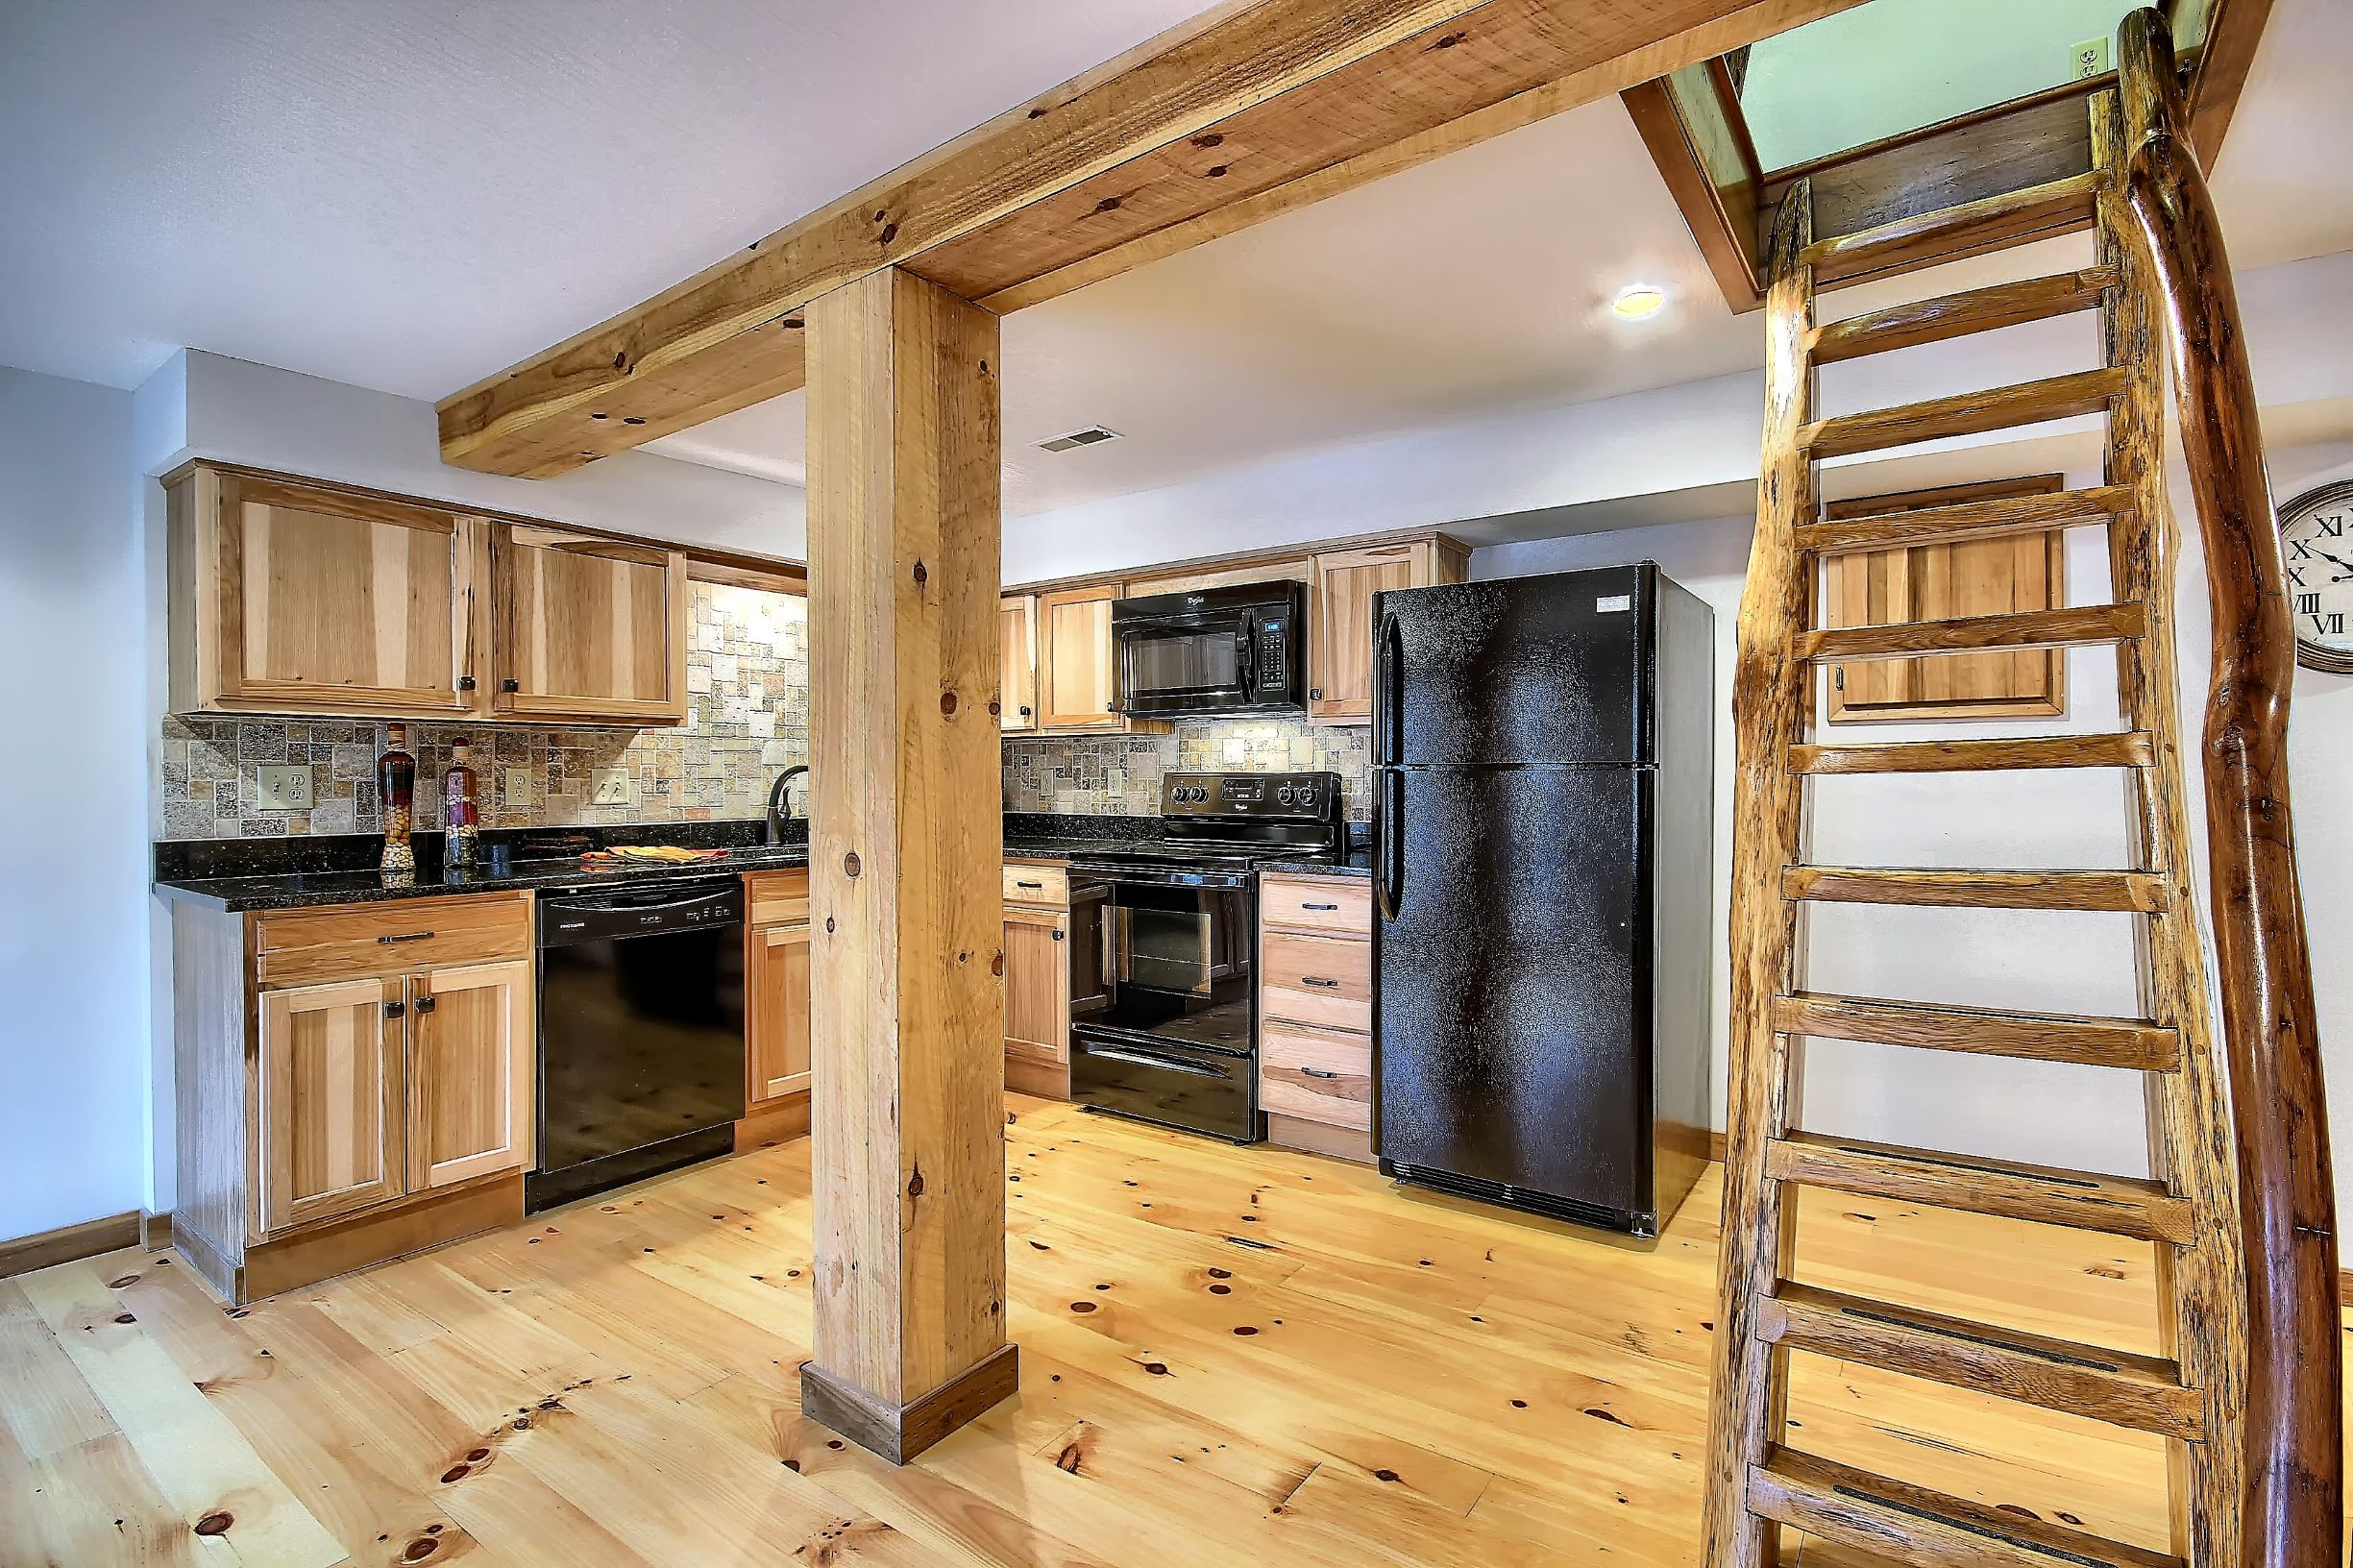 Kitchen - Open concept kicthen. Ladder staircase leads to master bedroom and full bath with soaking tub. Note other 2 bedrooms are accessed via a normal staircase.